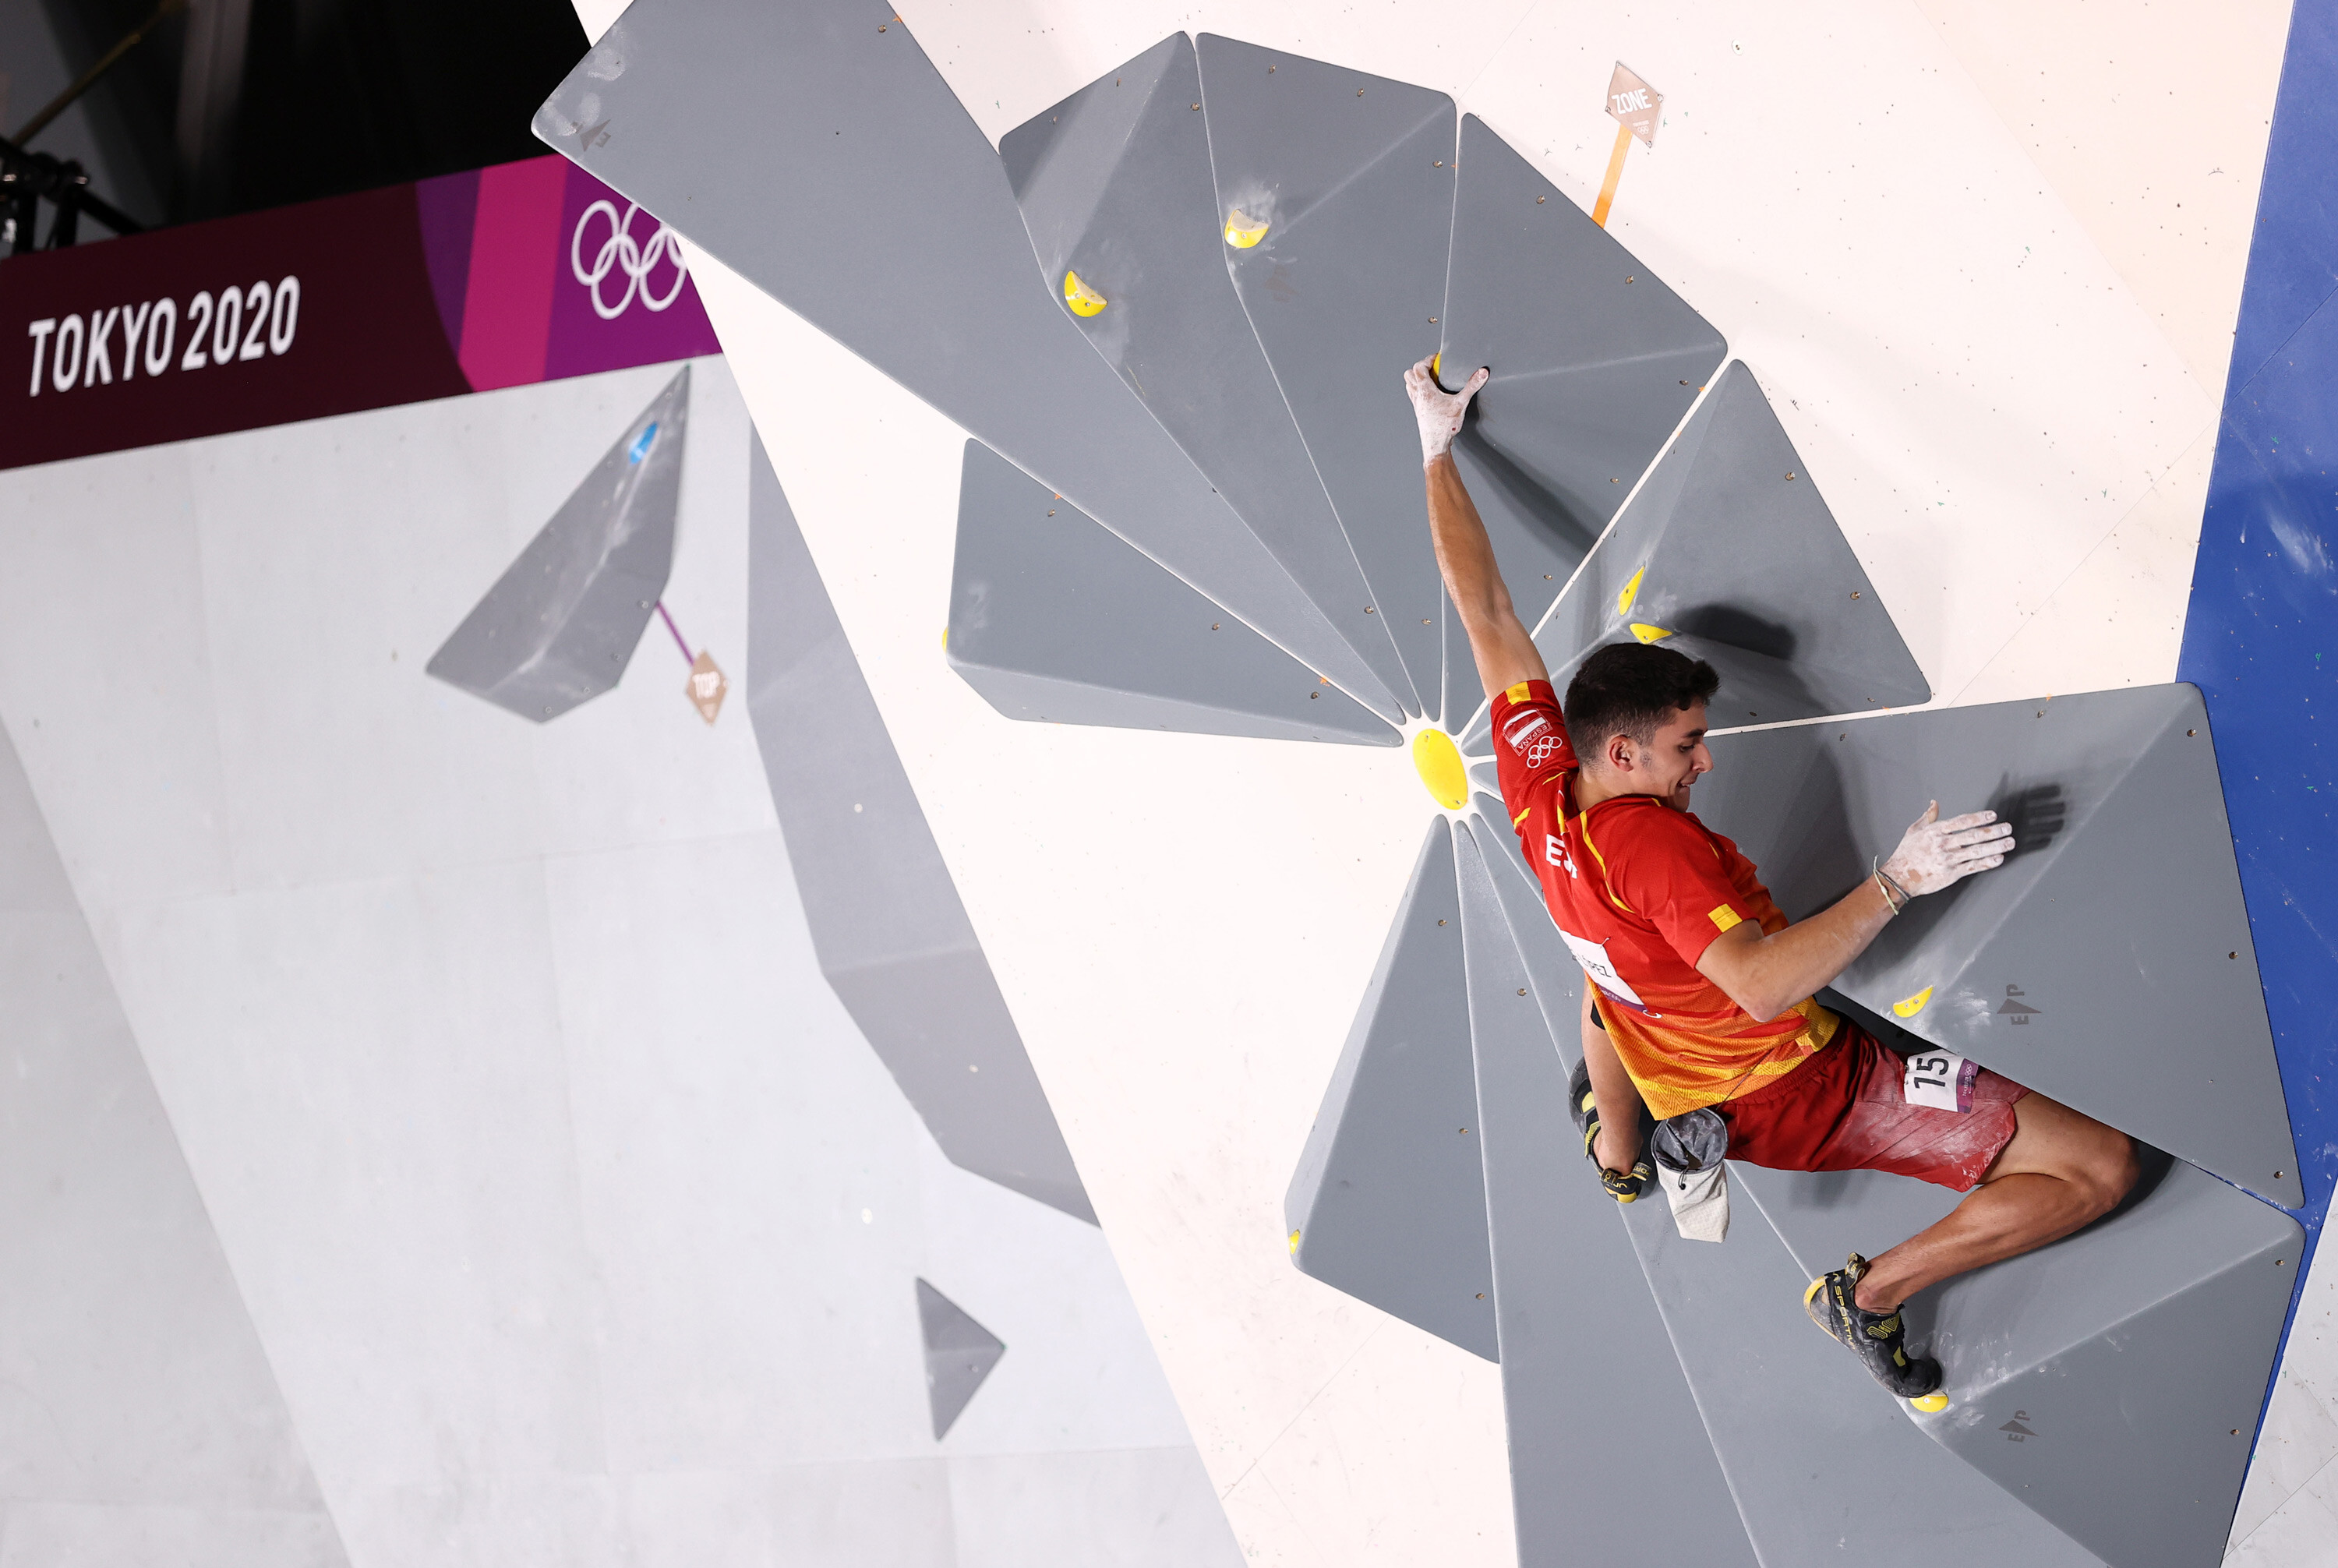 Alberto Ginés wins first Olympic climbing gold in Tokyo